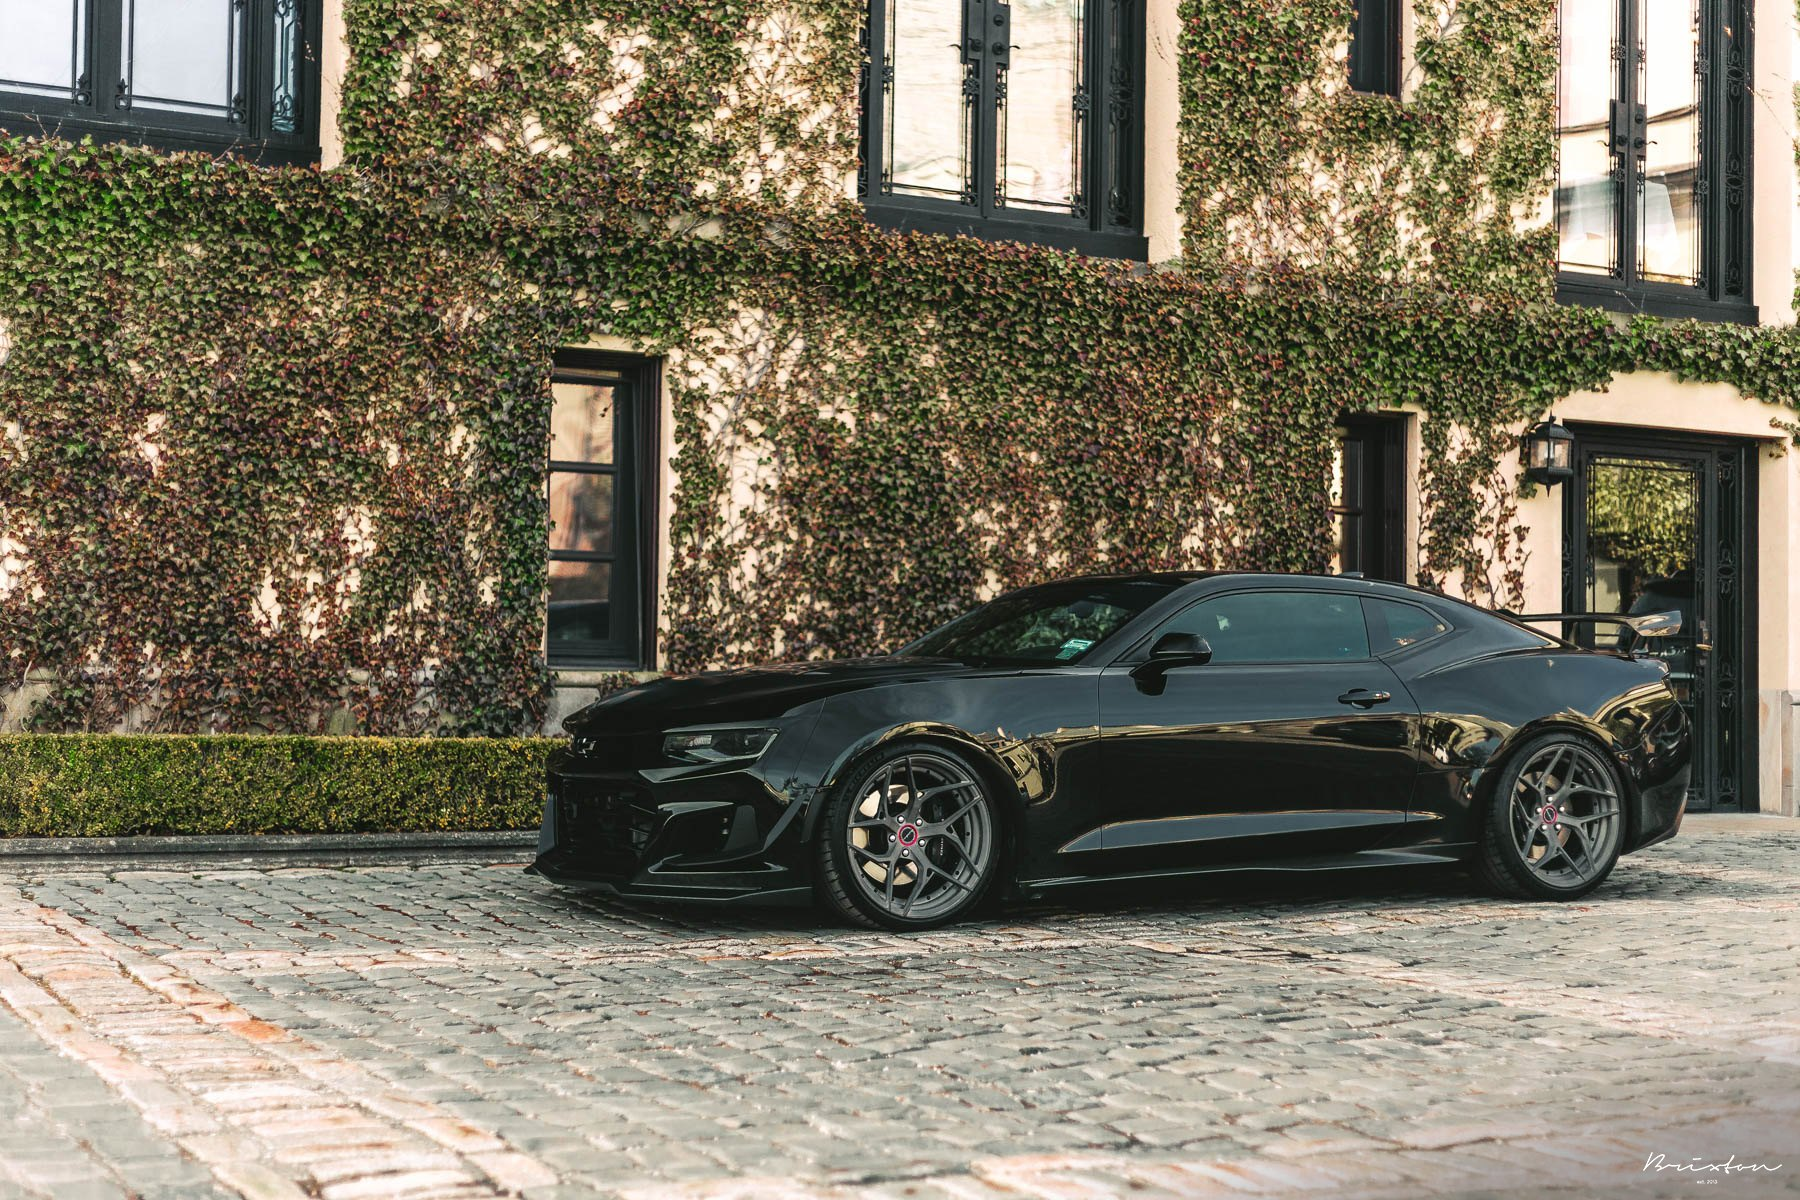 Graphite Brixton Forged Wheels on Black Chevy Camaro - Photo by Brixton Forged Wheels